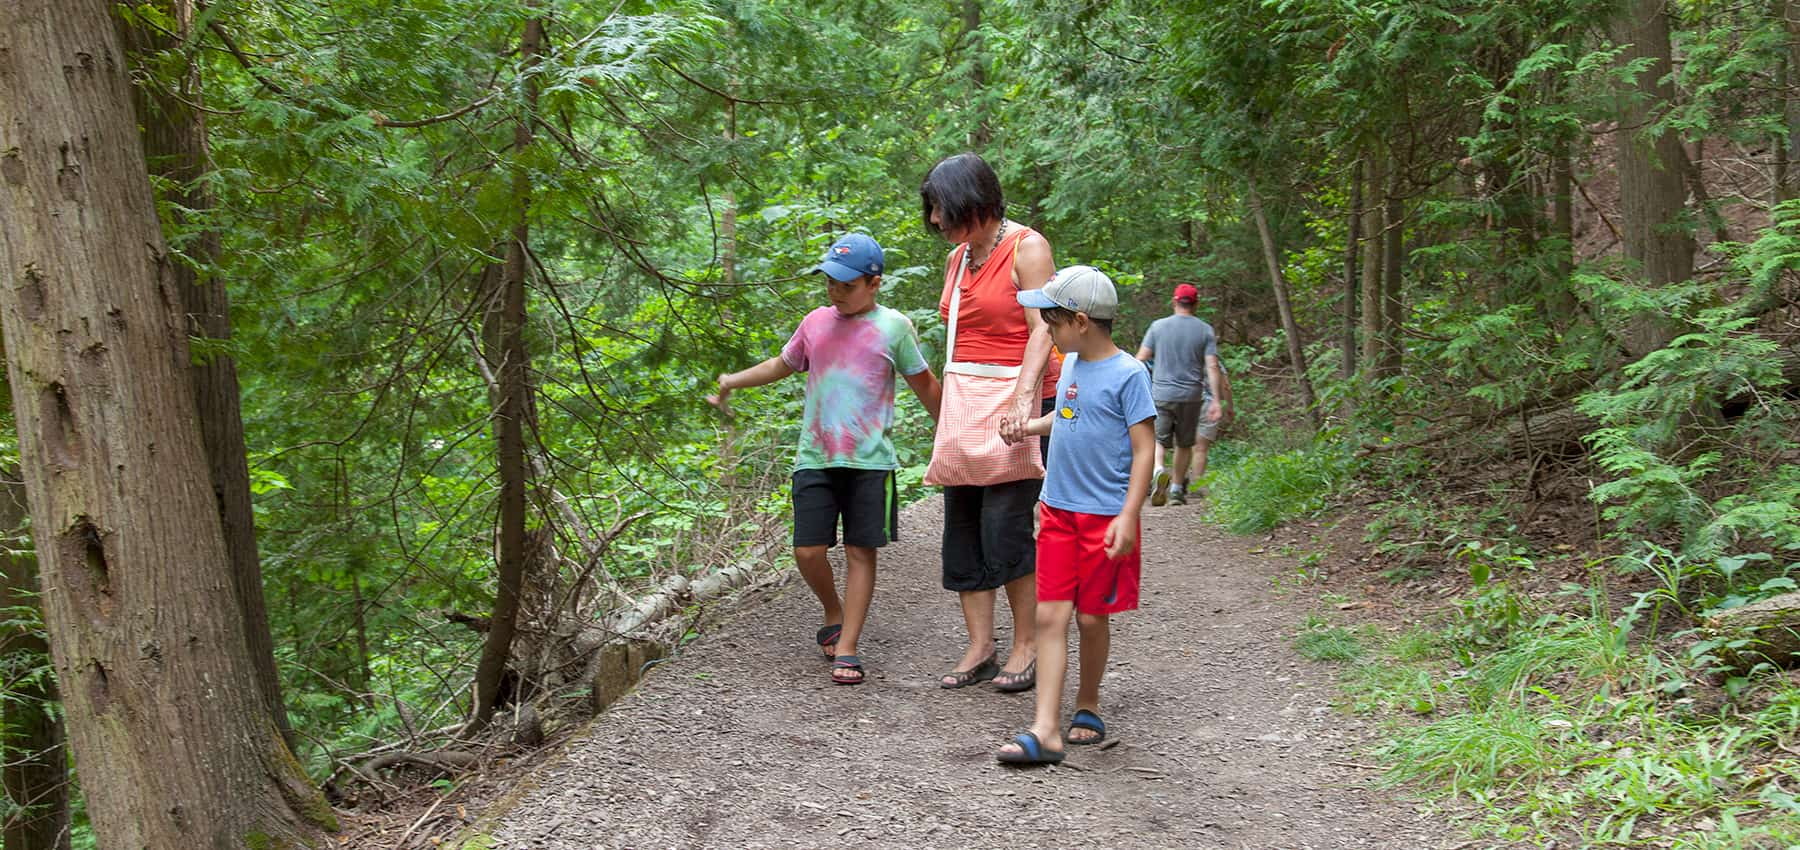 An adult and two children walk along a trail in Belfountain Conservation Area, looking at the trees.